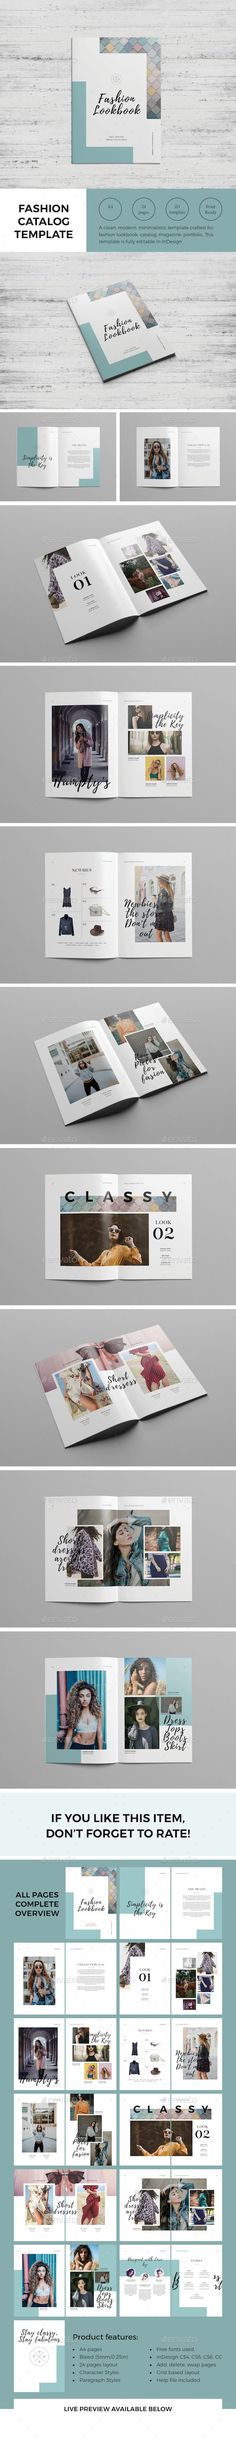 Fashion Magazine / Lookbook — #print #lookbook • Download ➝ https://graphicriver.net/item/fashion-magazine-lookbook/21237896?ref=pxcr